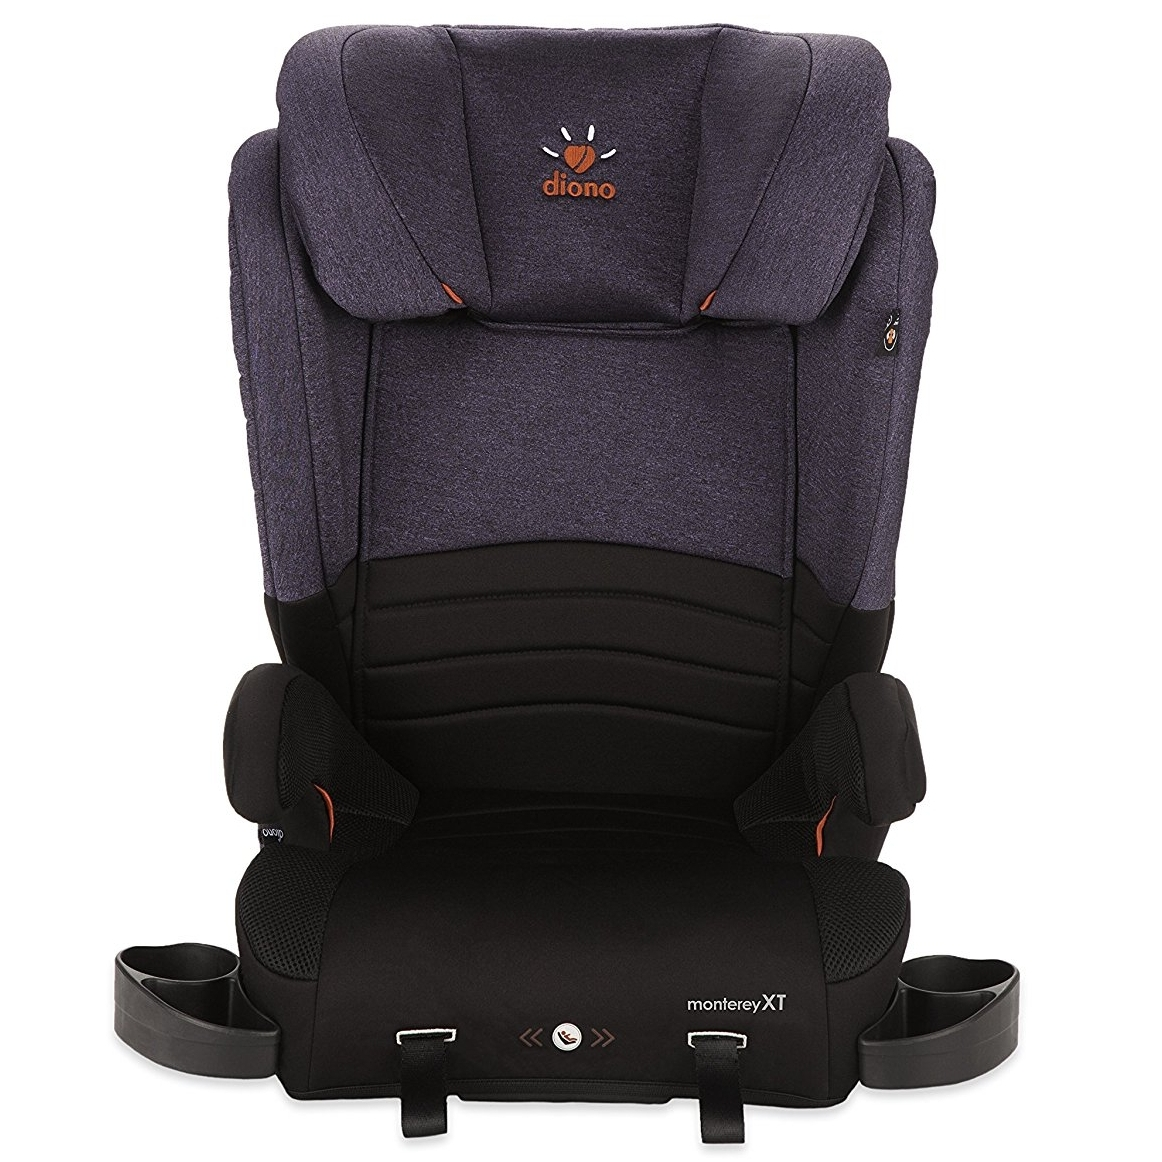 Diono Monterey XT High Back Car Booster Seat - Heather